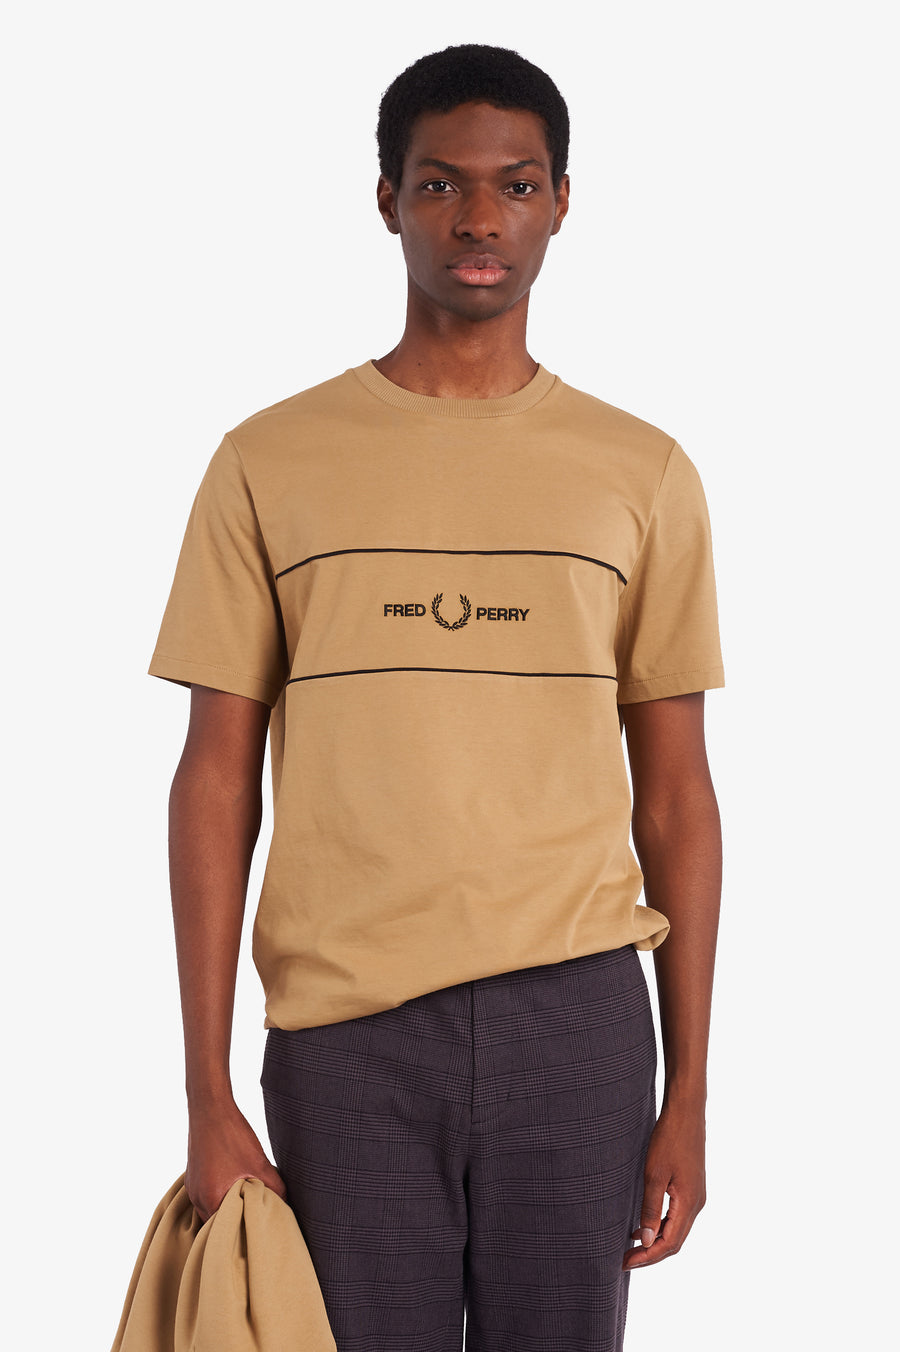 Fred Perry Embroidered Panel T-Shirt - Warm Stone